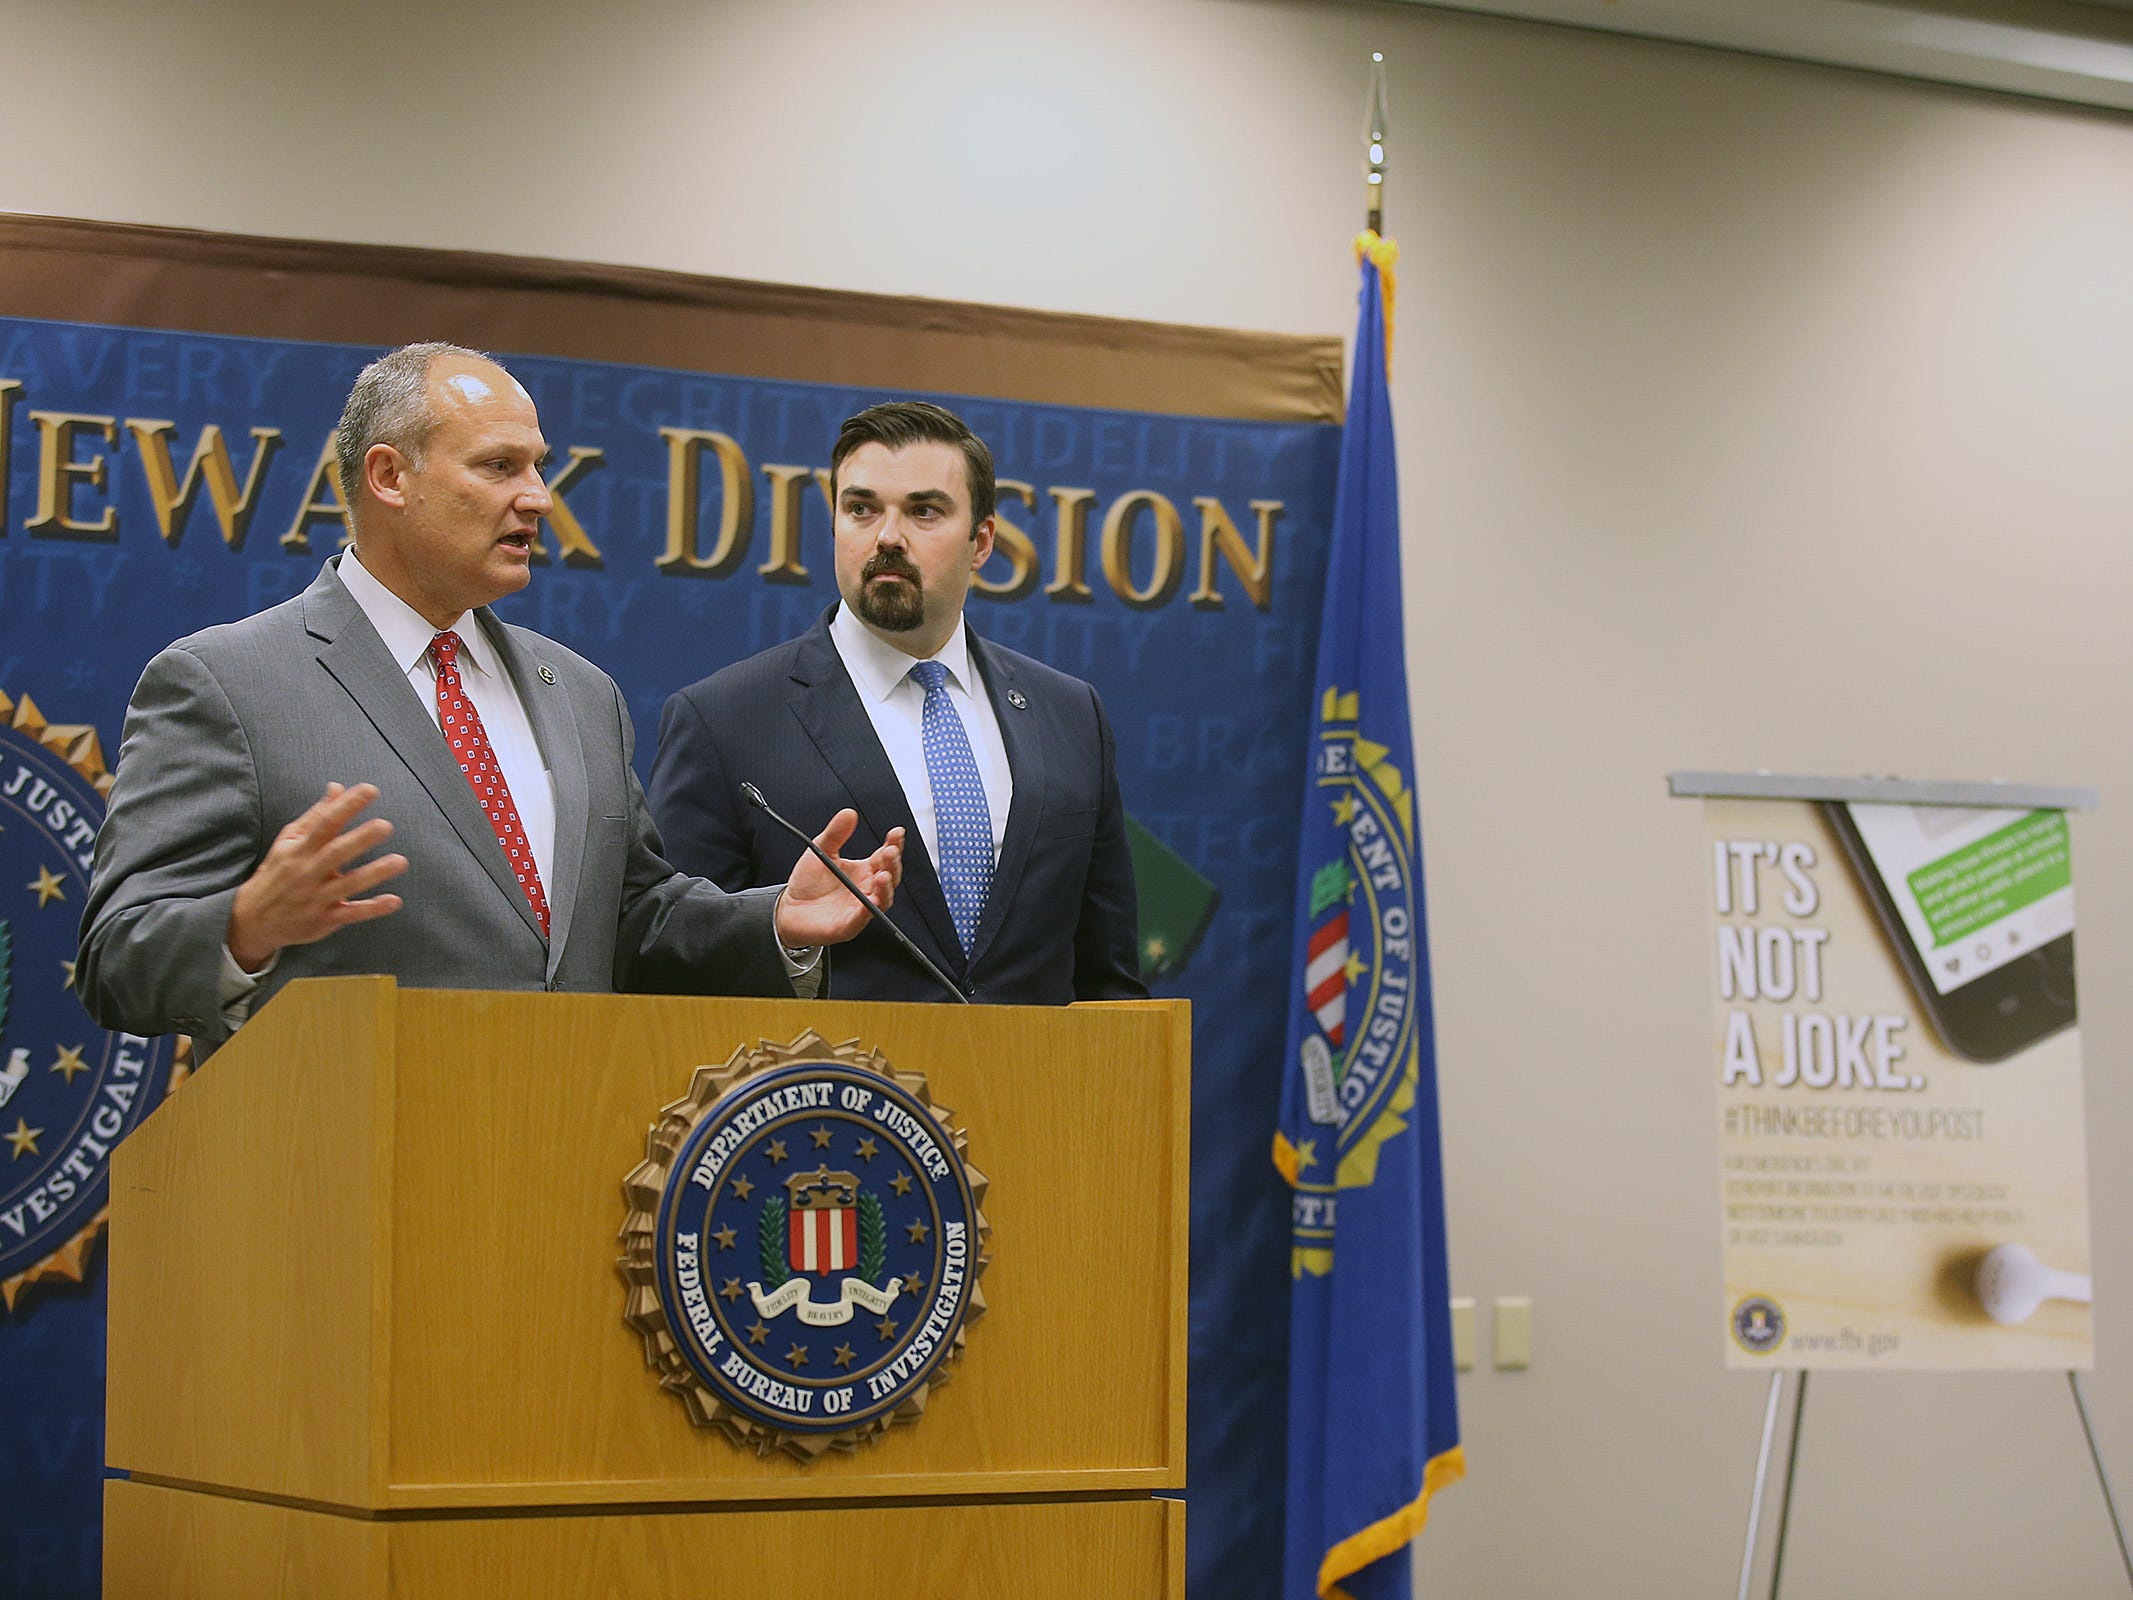 Christopher K. Stangl, assistant special agent in charge for FBI, and Jared Maples, director of Homeland Security and Preparedness, launch their #thinkbeforeyoupost campaign and discuss the topic of hoax threats during a press conference at the Federal Bureau of Investigation headquarters in Newark, NJ Thursday, November 15, 2018.